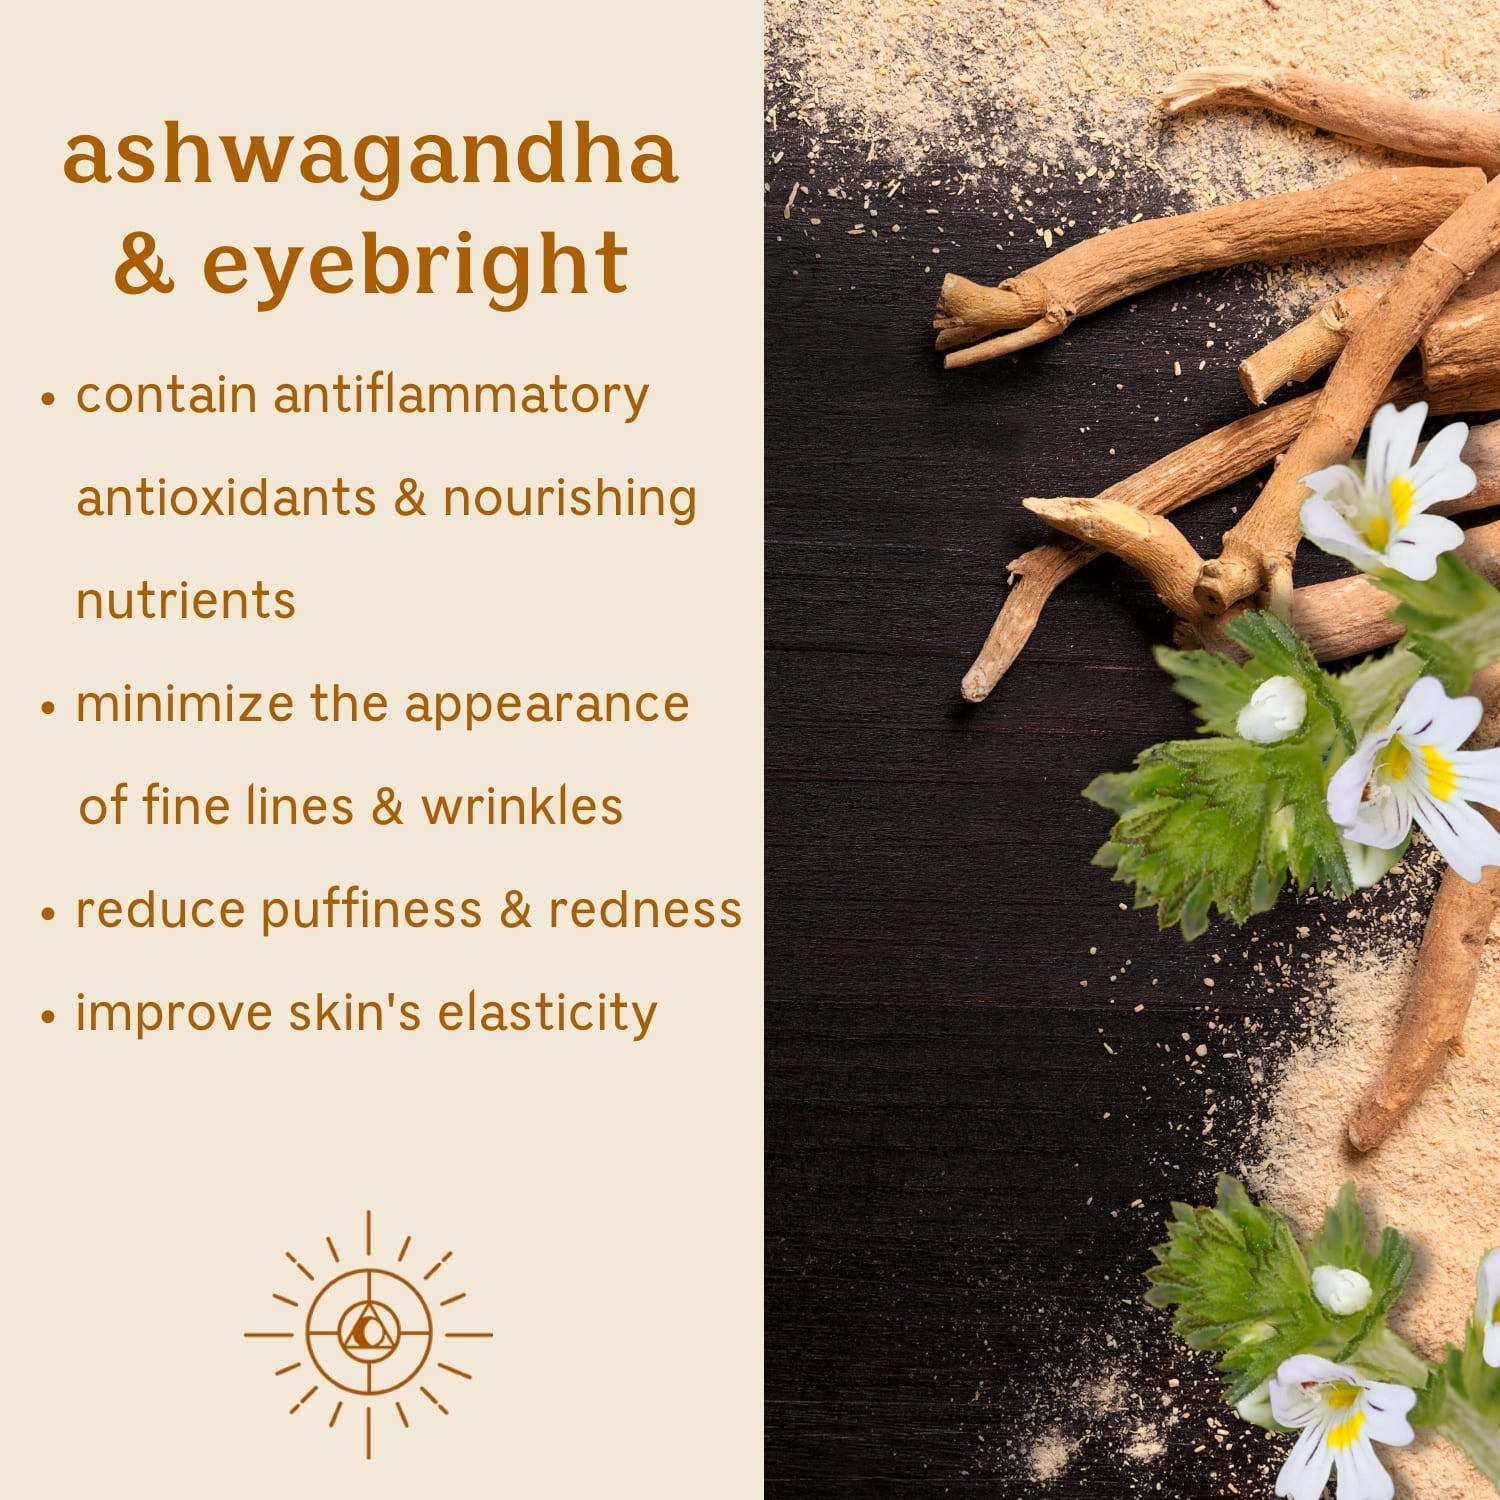 Solluna's Feel Good Eye Cream key ingredient benefit description. Ashwagandha & Eyebright: Contain antiflammatory antioxidants & nourishing nutrients, Minimize the appearance of fine lines & wrinkles, Reduce puffiness & redness, Improve skin's elasticity